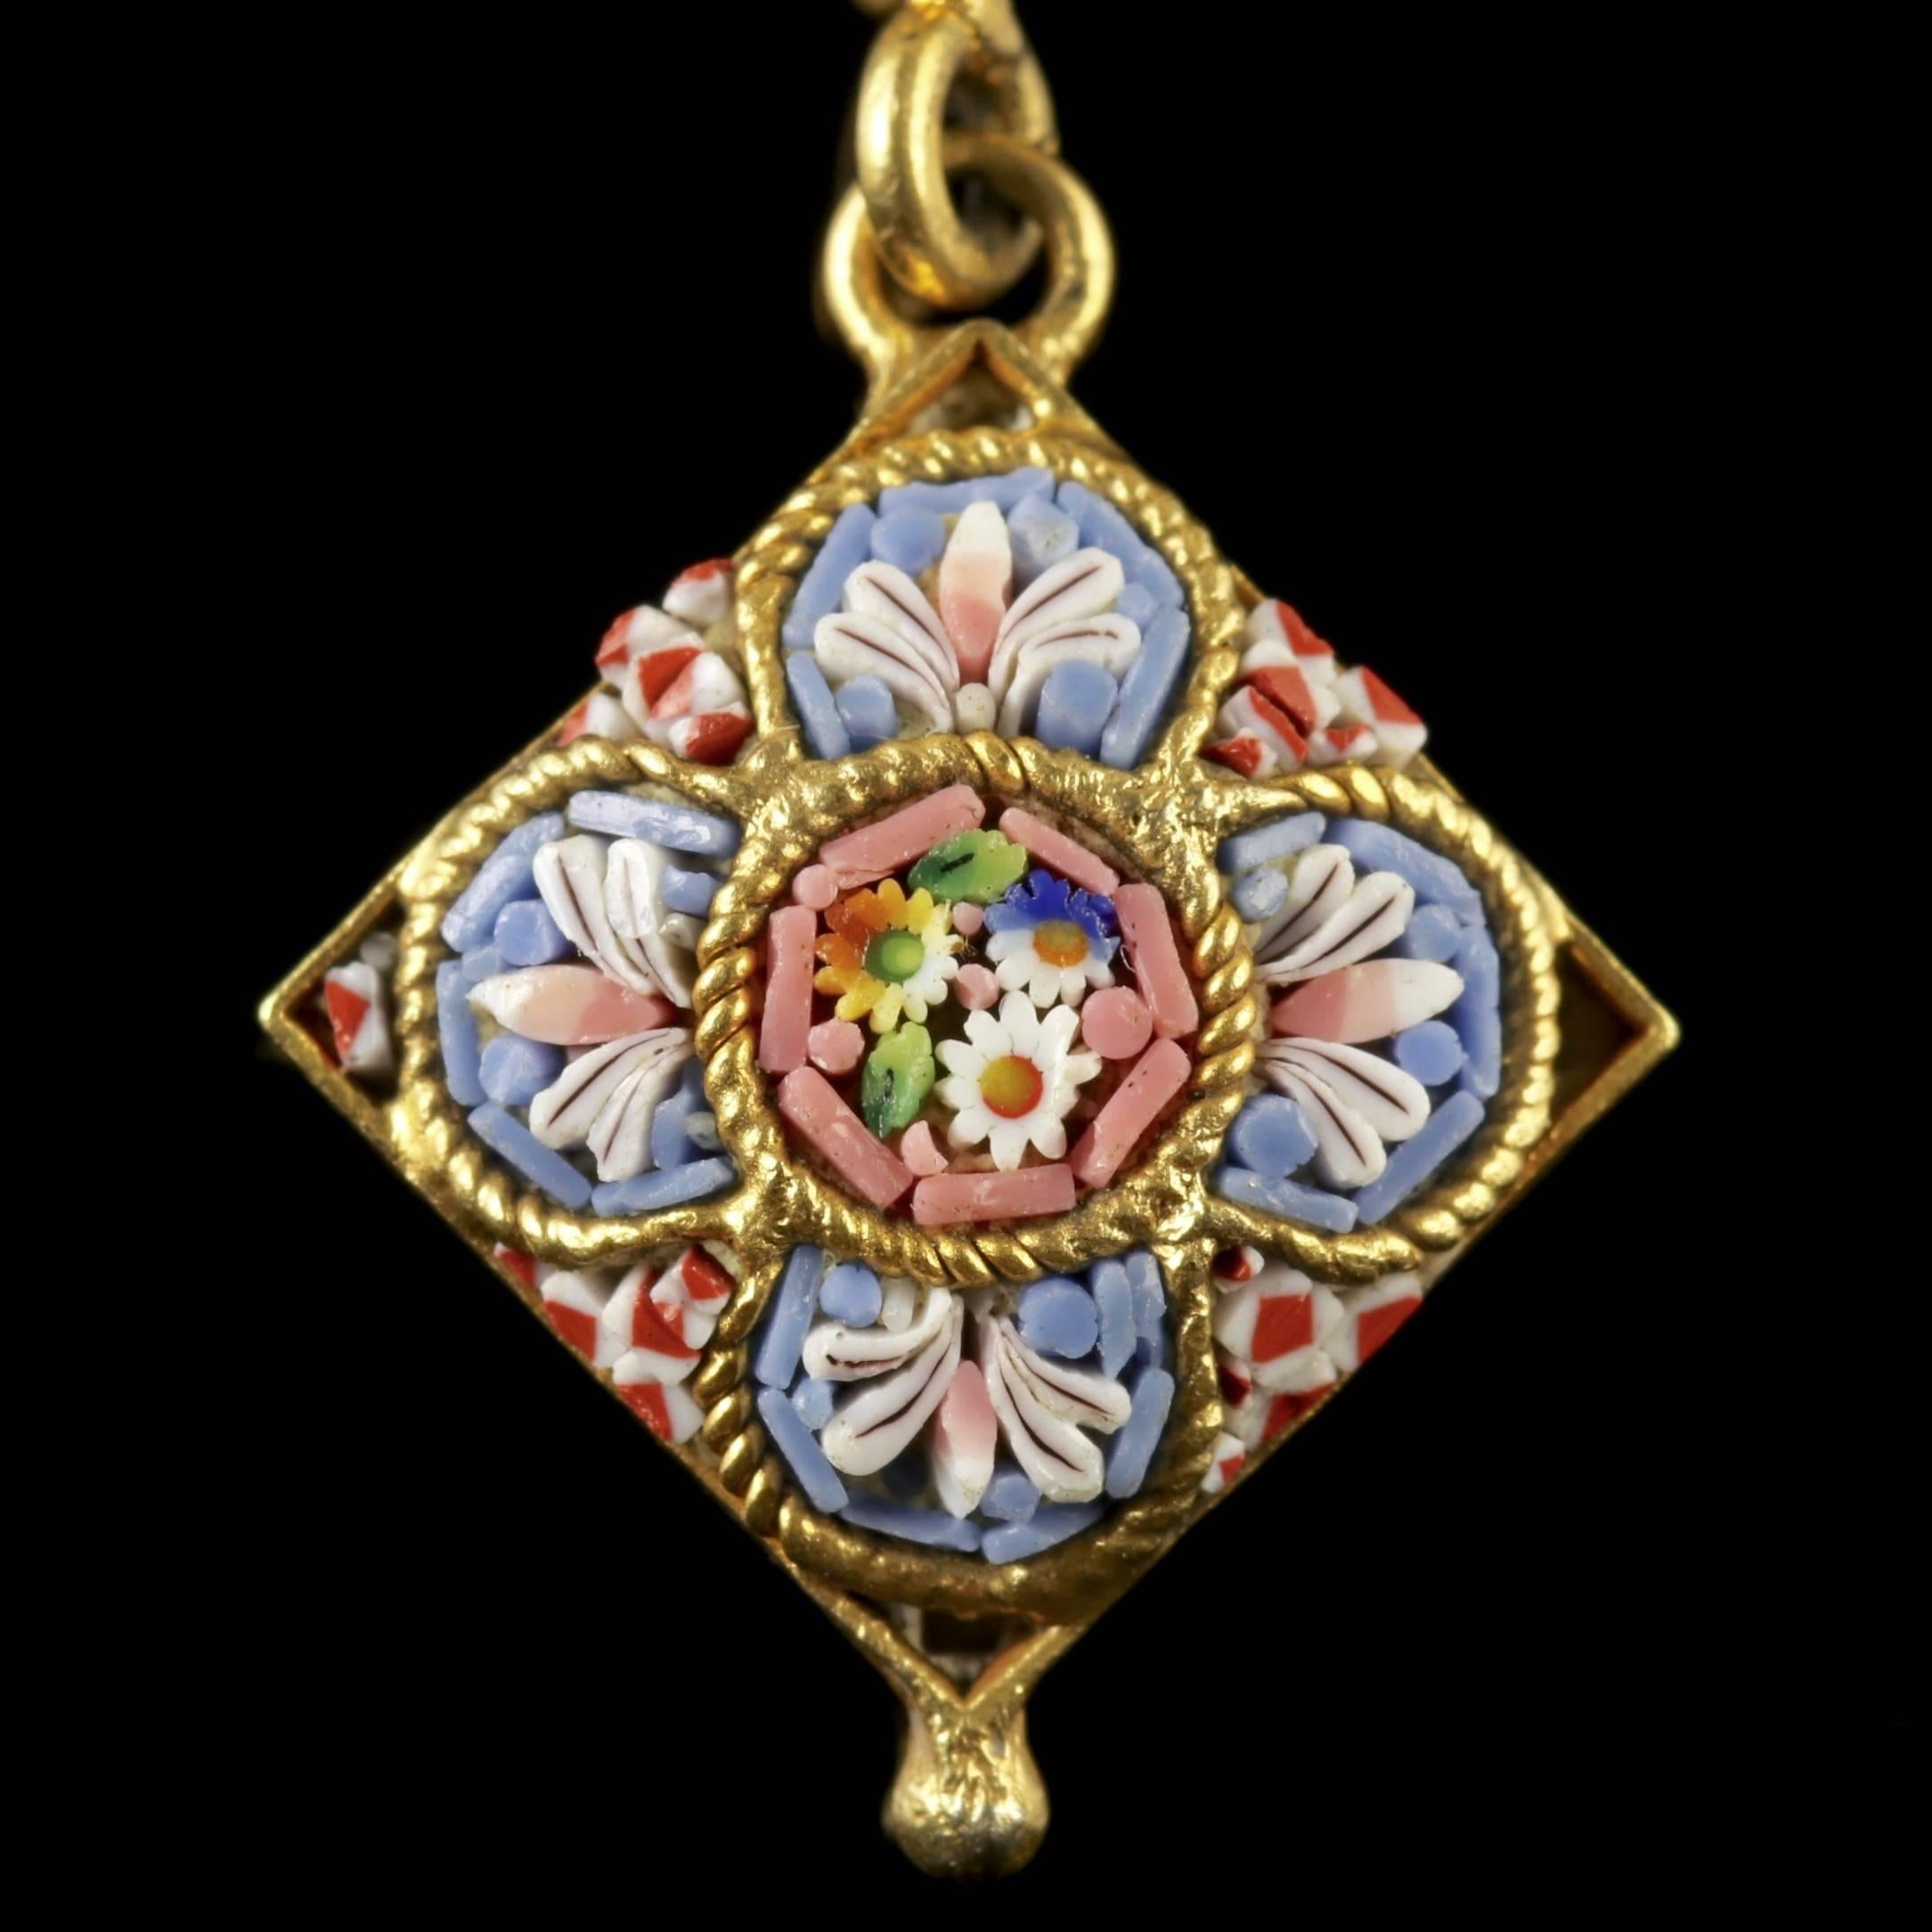 Antique victorian micro mosaic necklace 18 carat gold gilt circa antique victorian micro mosaic necklace 18 carat gold gilt circa 1895 at 1stdibs aloadofball Image collections